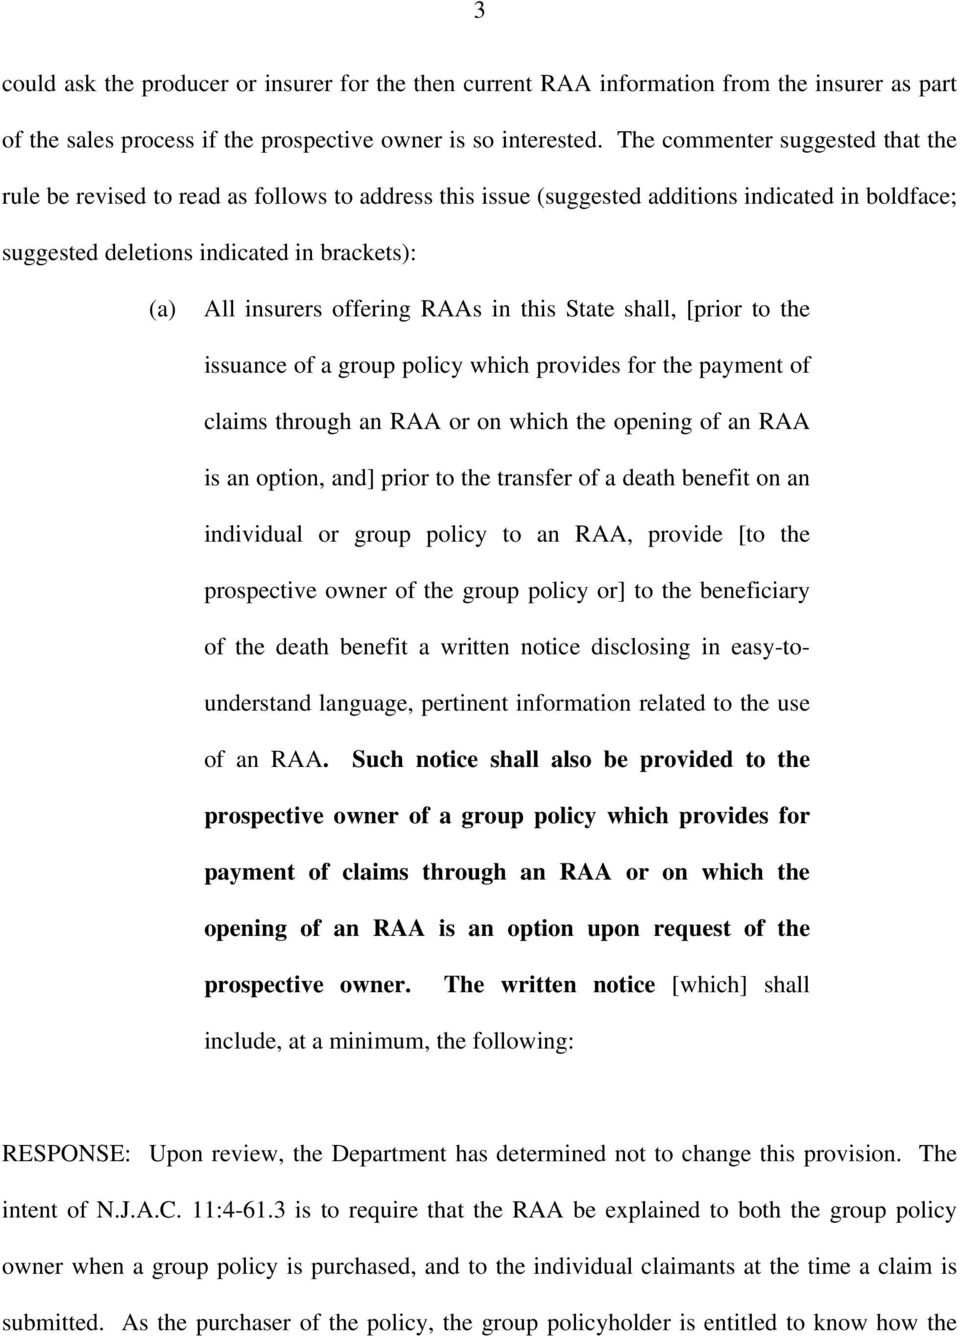 offering RAAs in this State shall, [prior to the issuance of a group policy which provides for the payment of claims through an RAA or on which the opening of an RAA is an option, and] prior to the